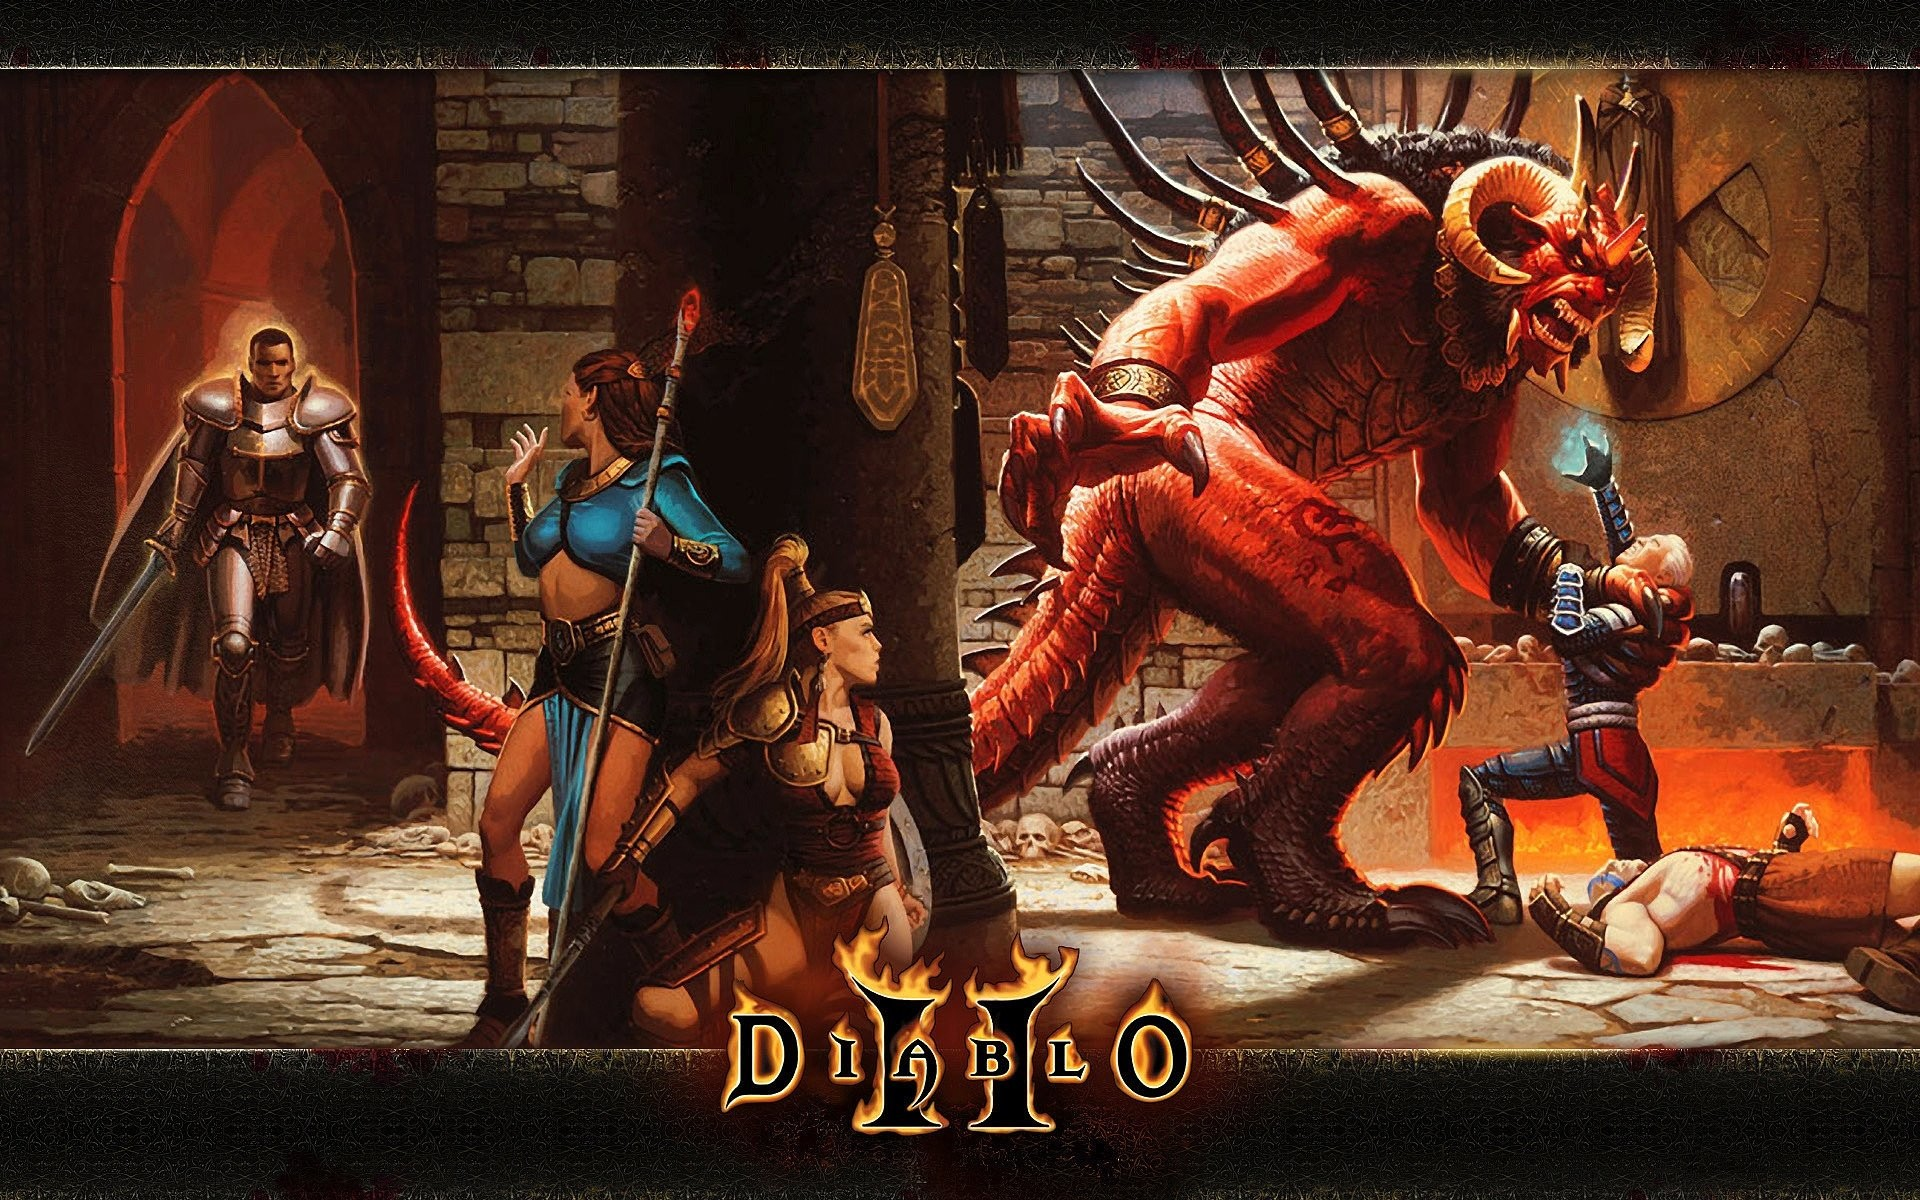 Res: 1920x1200, Wallpaper zu Diablo 2: Lord of Destruction herunterladen